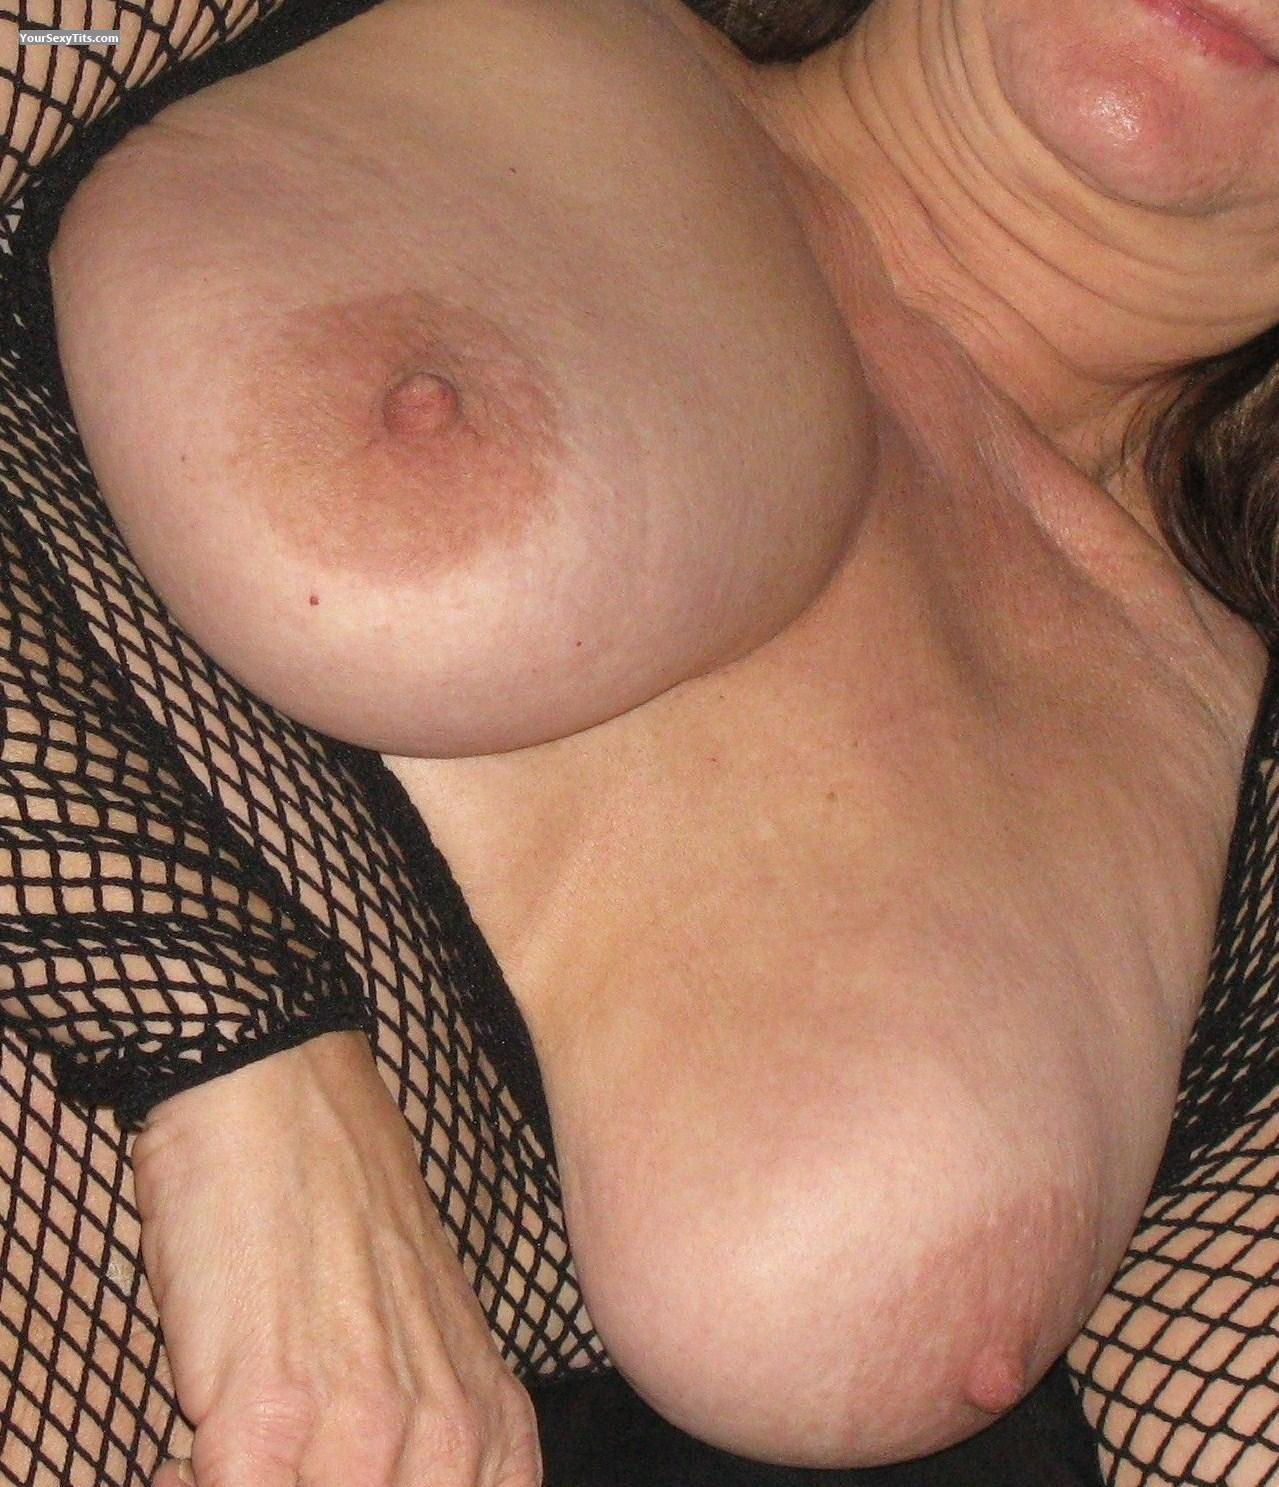 Tit Flash: Very Big Tits - Tootsiepie from Canada